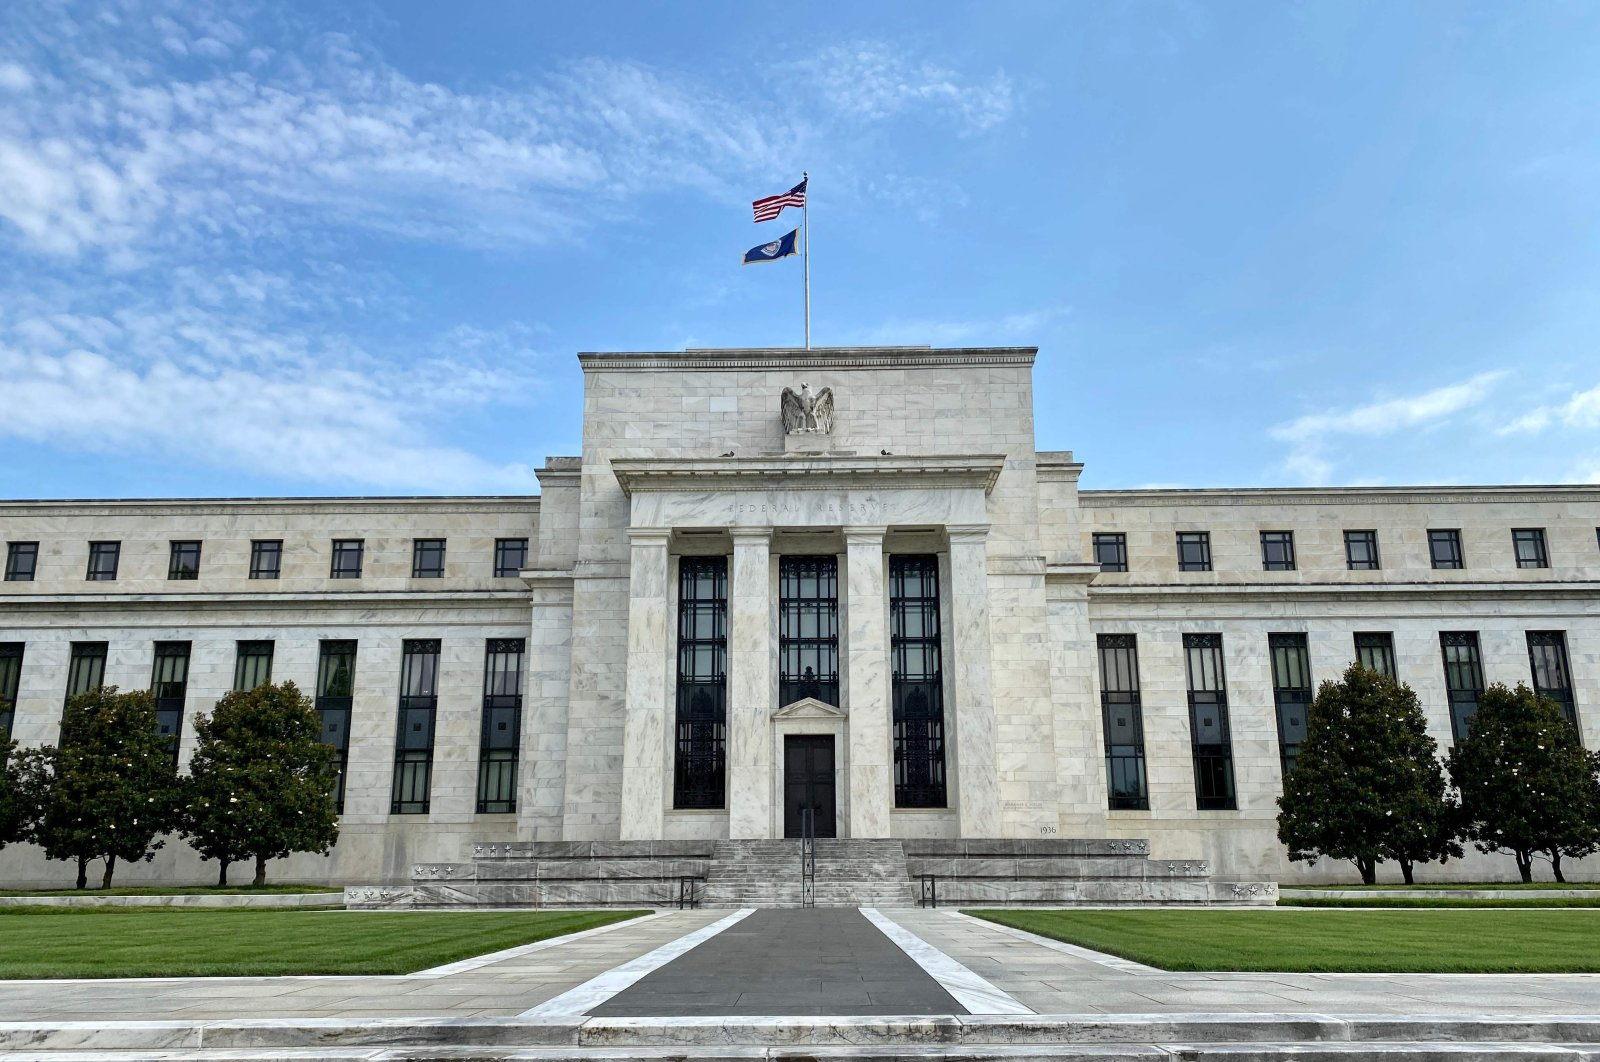 The U.S. and Federal Reserve flags fly on top of the Federal Reserve Board building in Washington, D.C., the U.S., July 1, 2020. (AFP Photo)